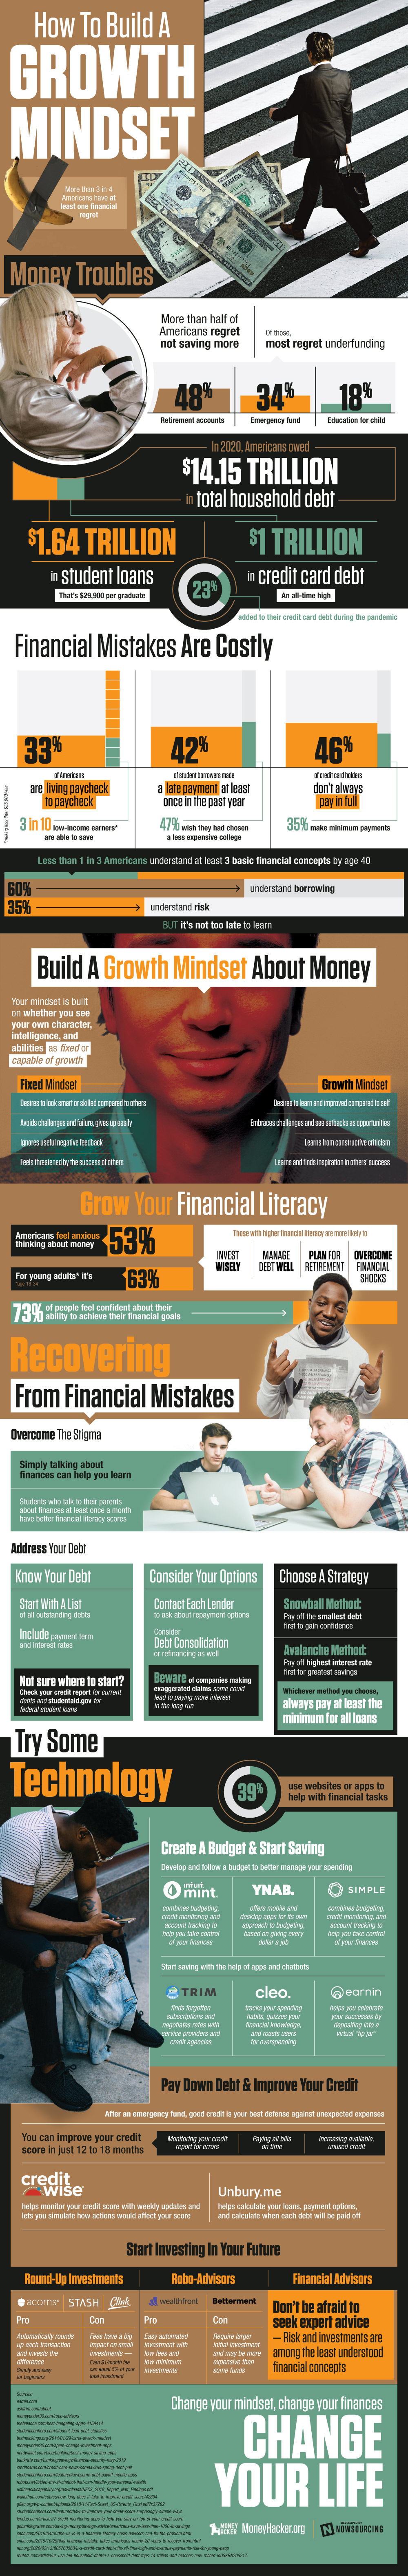 A Growth Mindset And Your Personal Finances - Infographic